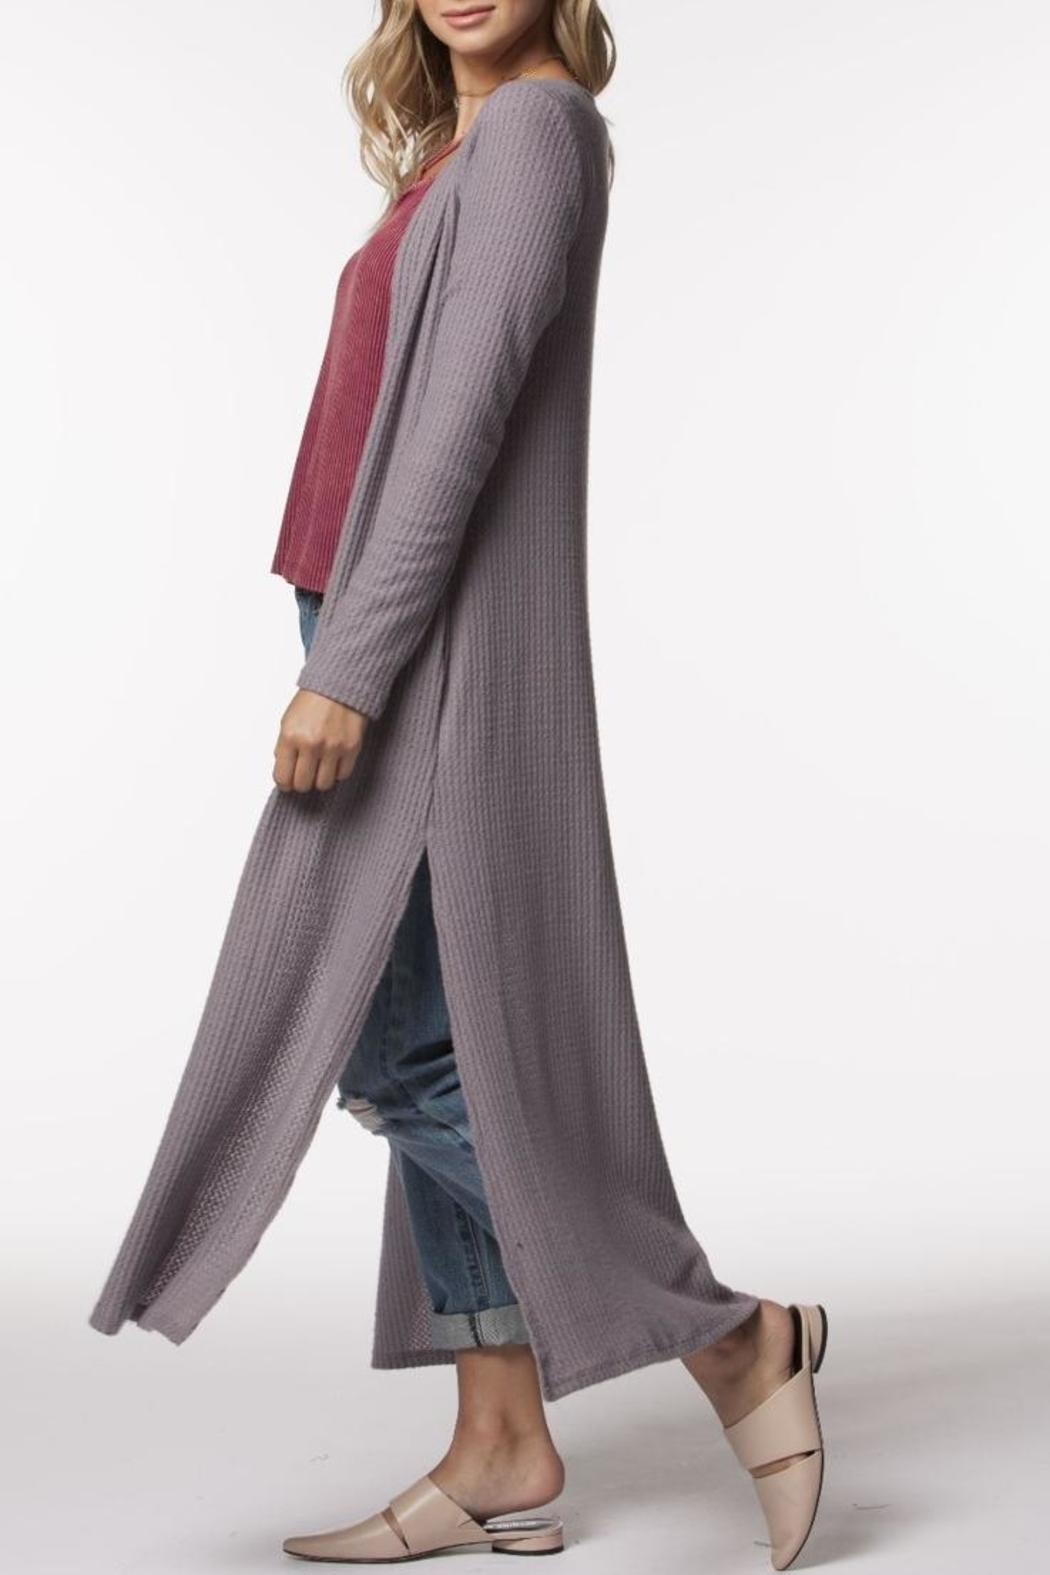 PPLA Clothing Zaria Duster - Side Cropped Image